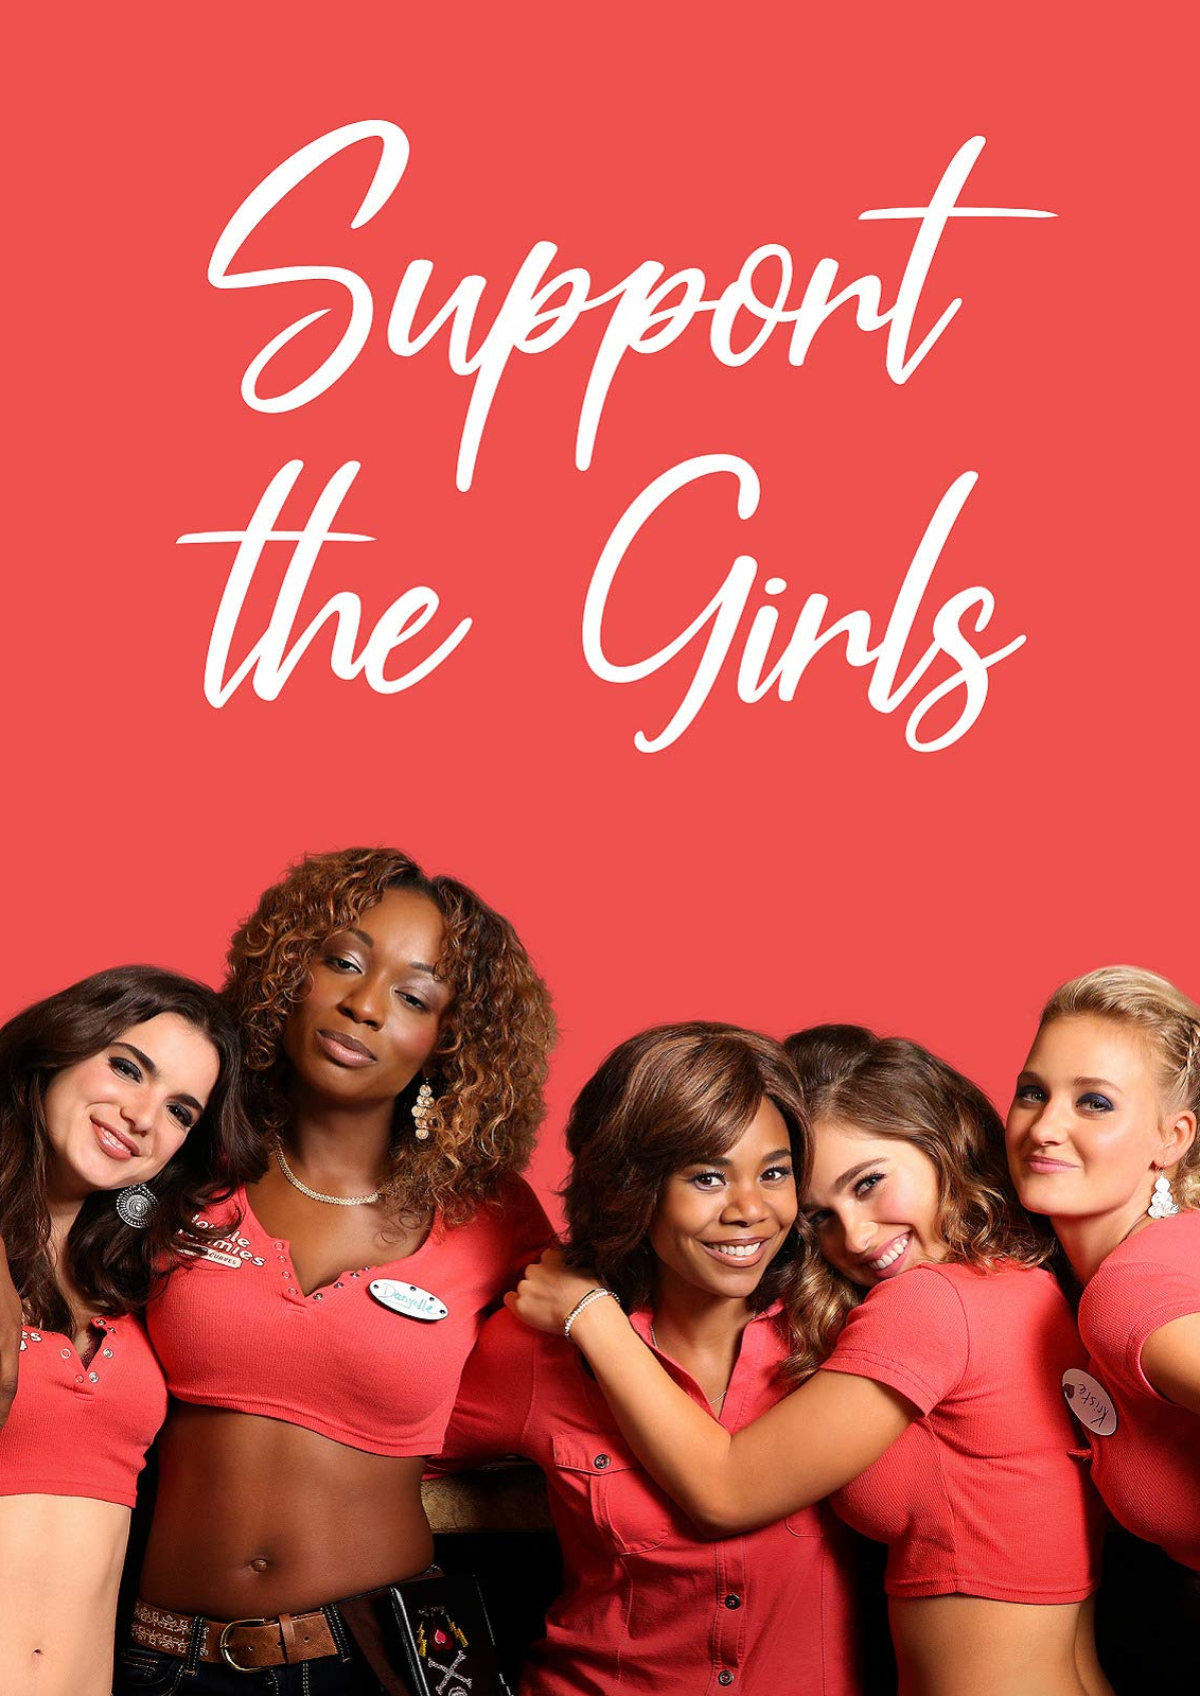 'Support The Girls' movie poster